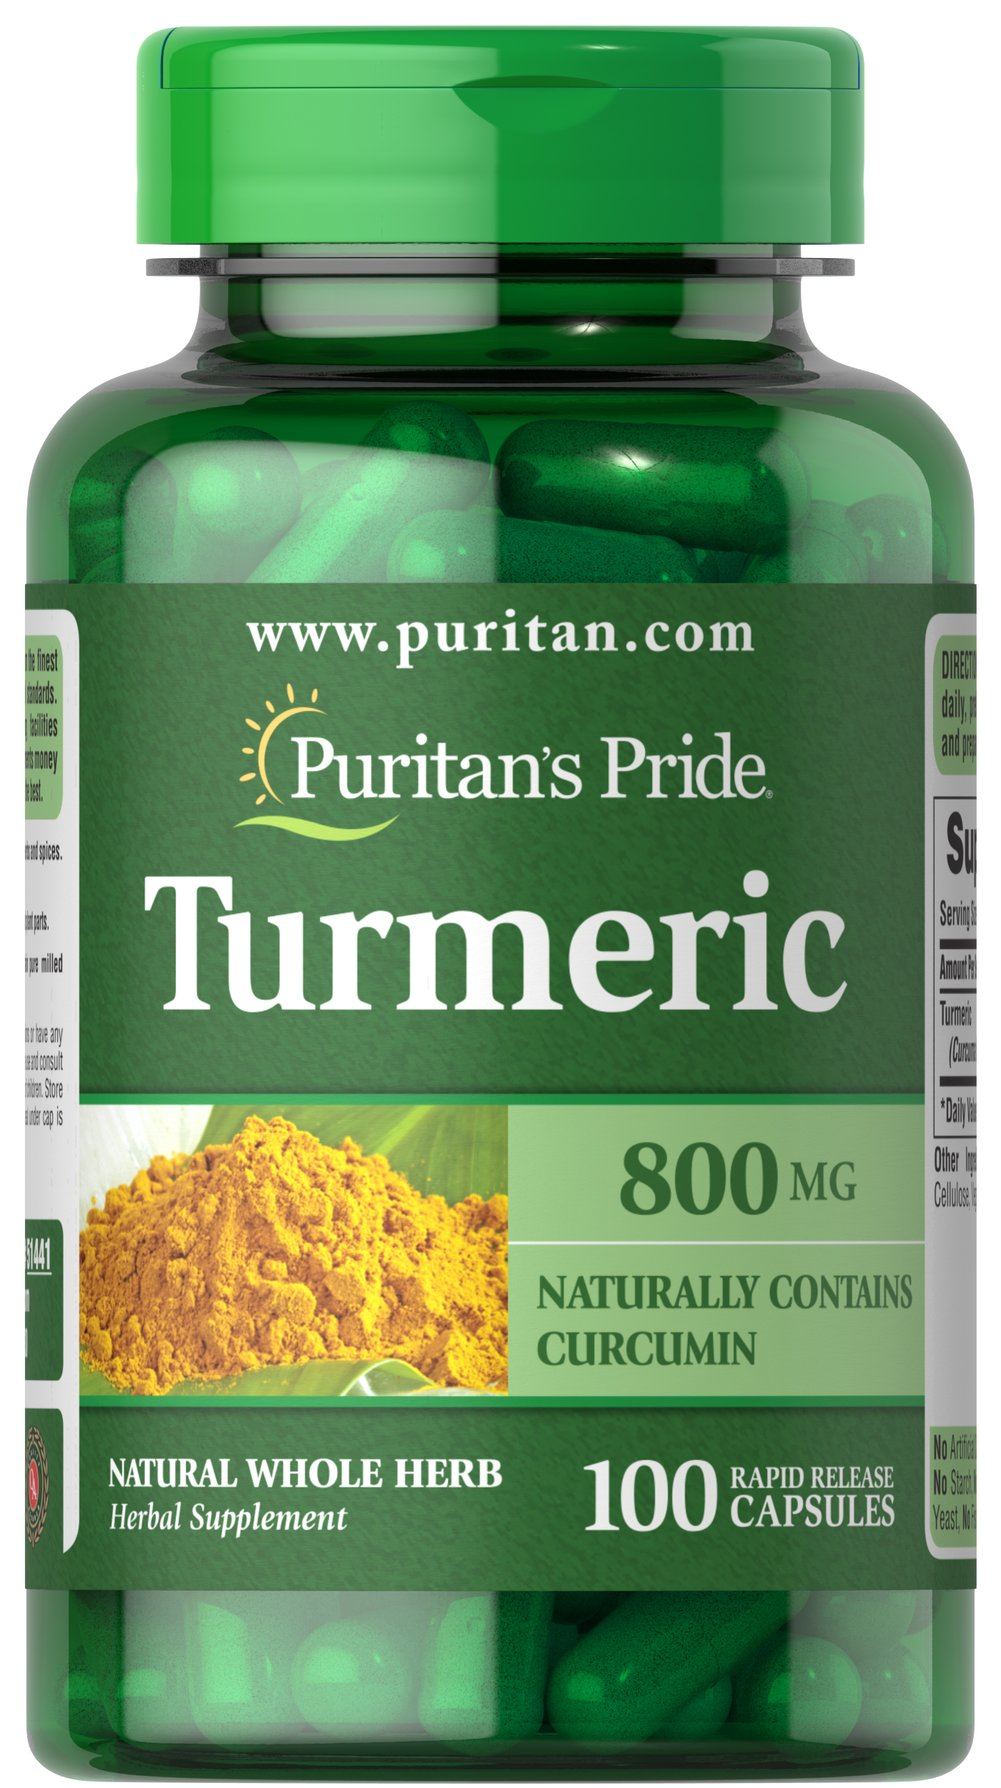 Turmeric 800 mg <p>Turmeric, a common spice used in curry dishes, has become a popular herbal supplement due to its potential antioxidant properties, which may contribute to brain health.** Available in 800 mg capsules, adults can take one capsule two times daily with meals. Capsules may be opened and prepared as a tea.</p> 100 Capsules 800 mg $9.95